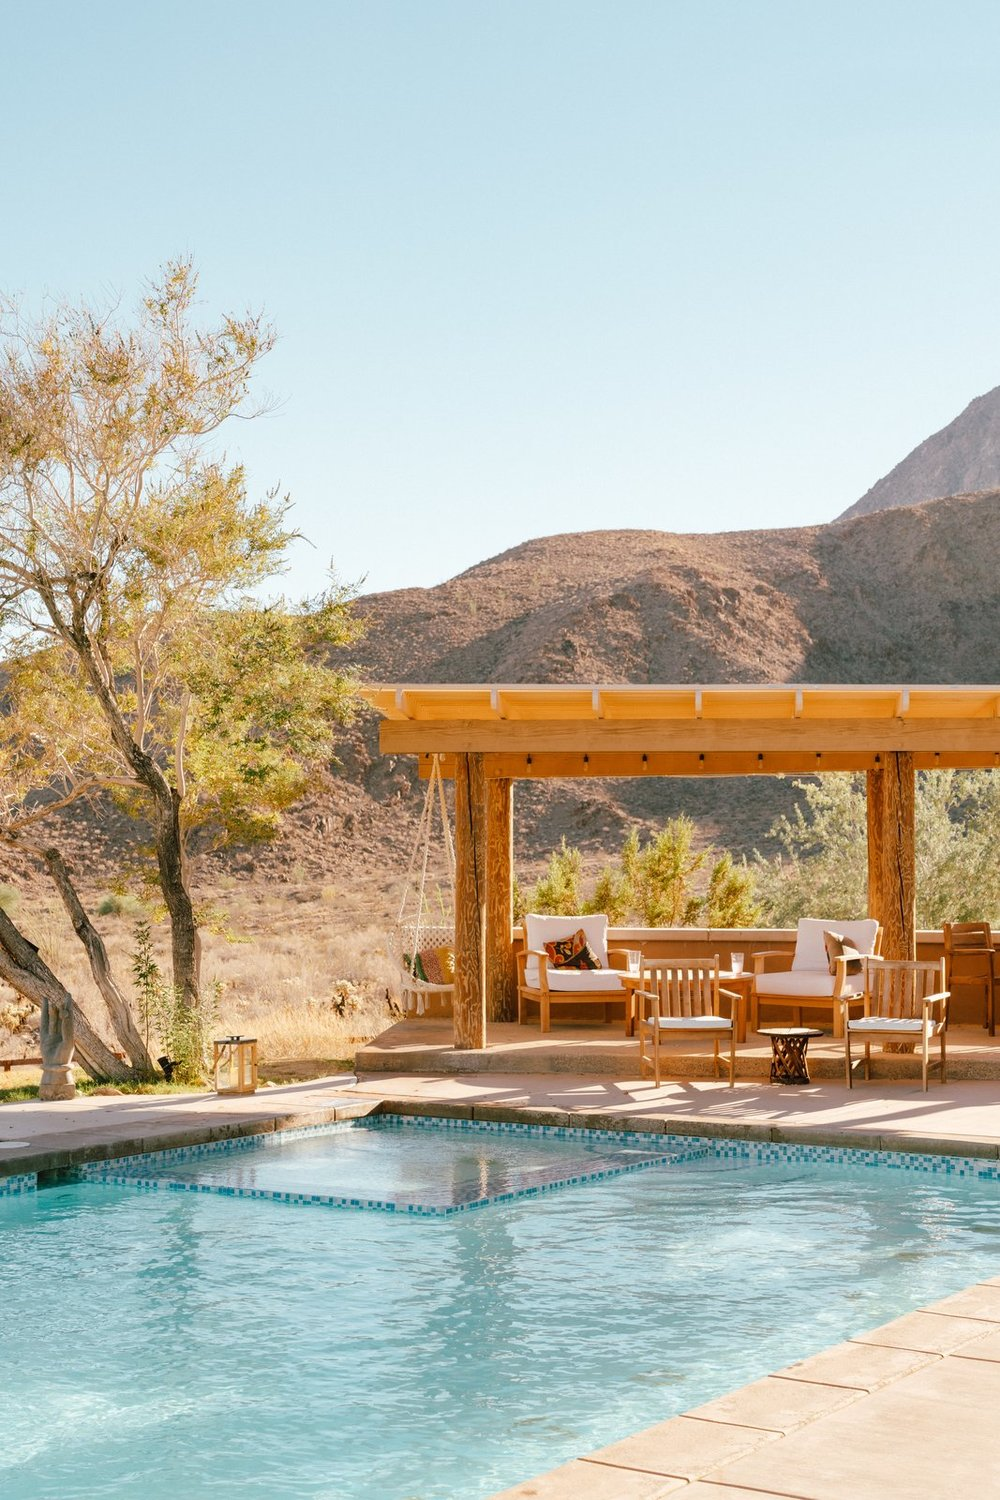 Despite the home's stylish interiors, Young is most drawn to what lies outdoors—a lounge for quiet moments and al fresco dining, a pool, an outdoor shower, the views, a 1972 VW Meyers Manx dune buggy, and a raised adobe platform with a teepee on the back veranda. (Tim Melideo)